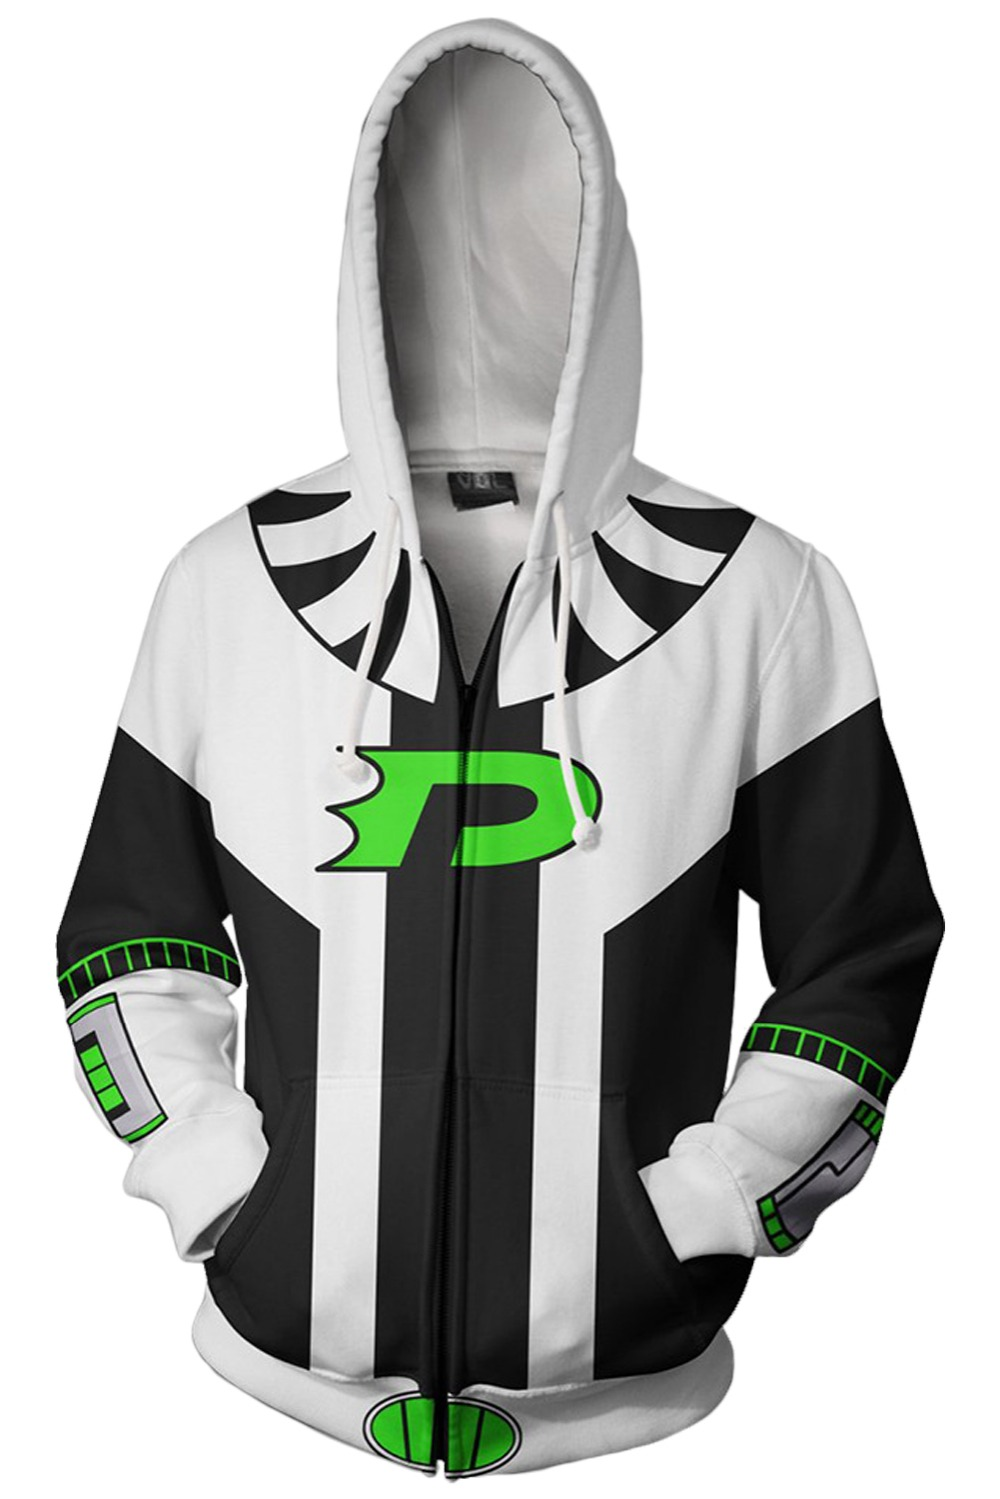 762f07e4311 Anime Danny Phantom Cosplay Costumes Sweatshirts Autumn Men And Women Anime  3D Printing Zipper Jacket Hooded Sweater